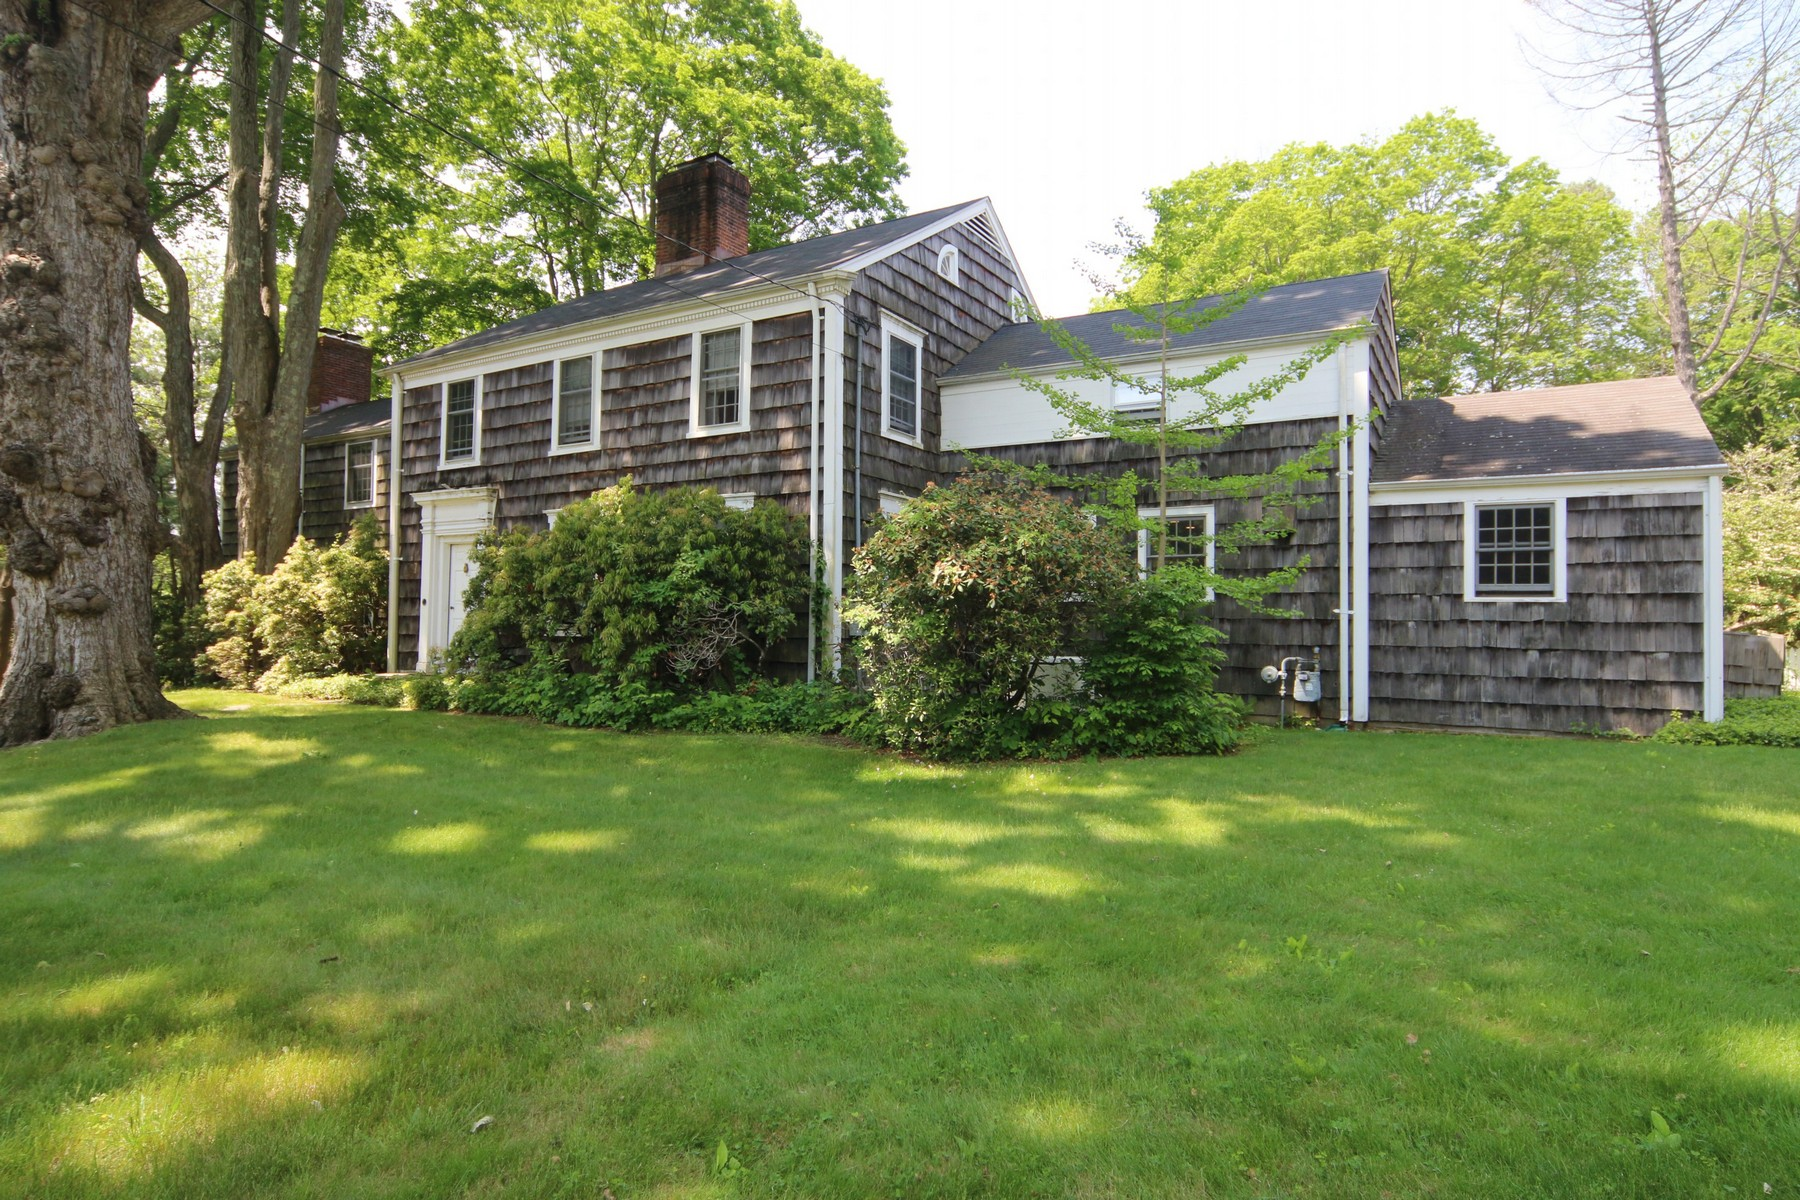 Single Family Home for Sale at Classic Connecticut Antique with Separate Legal Guest Cottage! 2031 Redding Road Fairfield, Connecticut, 06824 United States